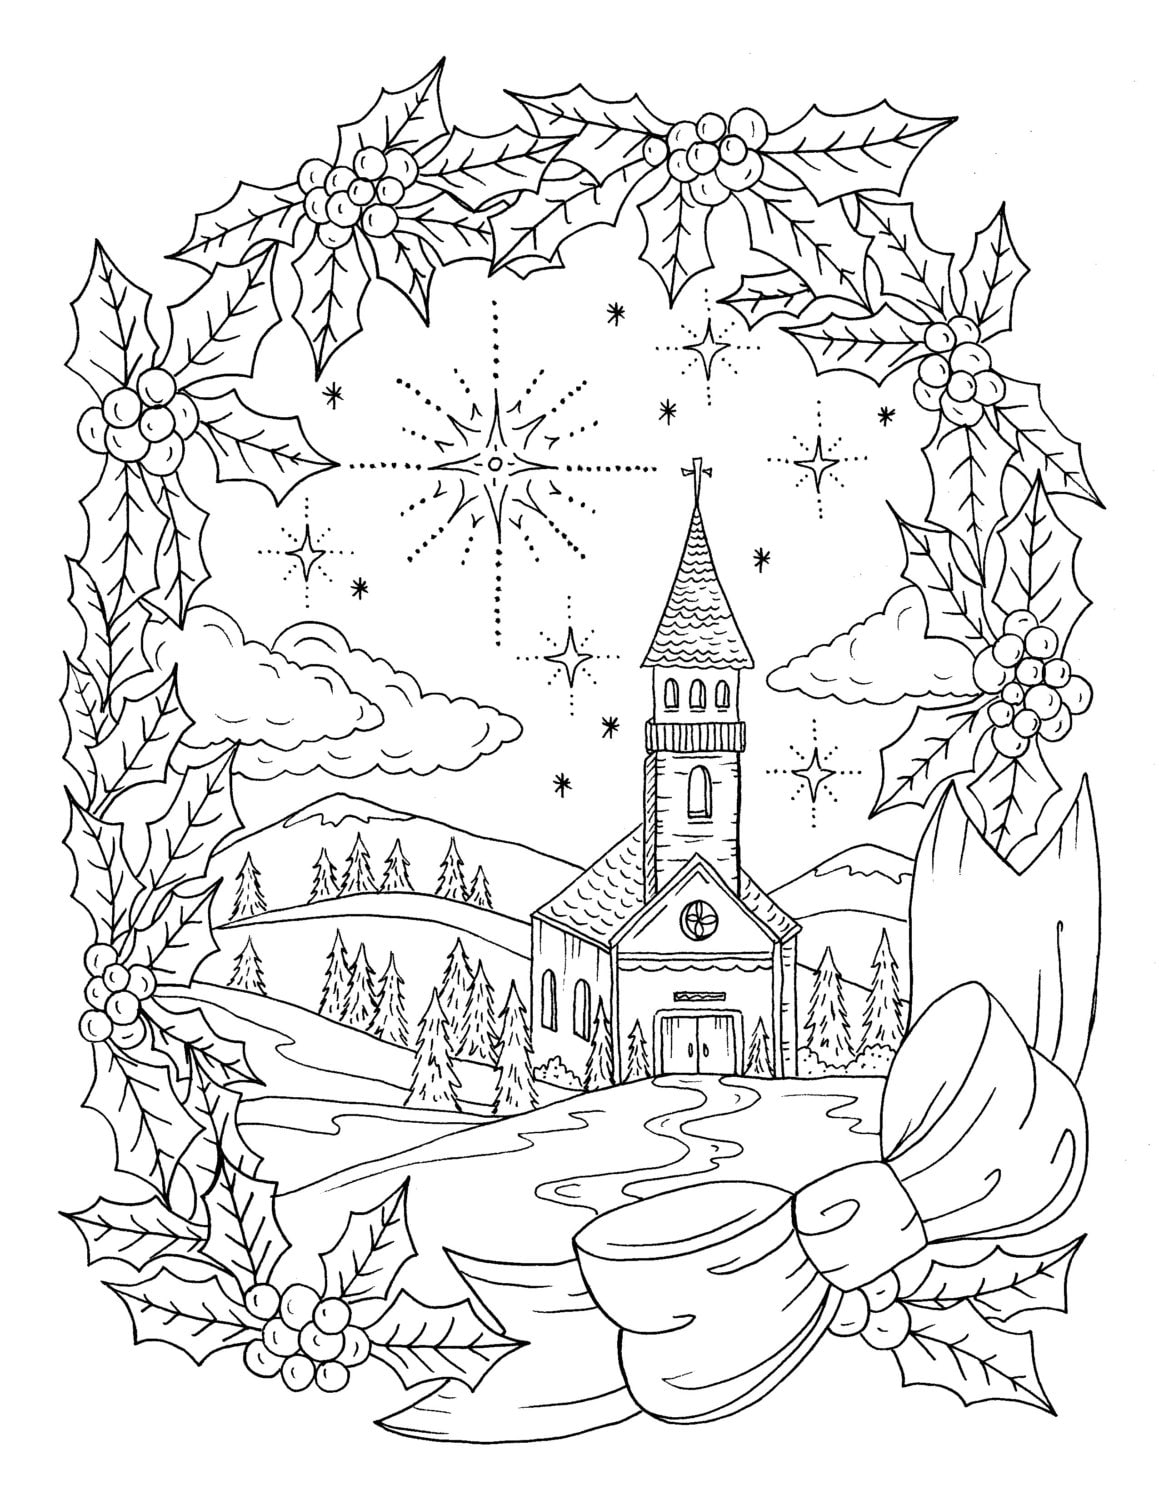 Christmas Coloring Page Instant download Adult Coloring | Etsy